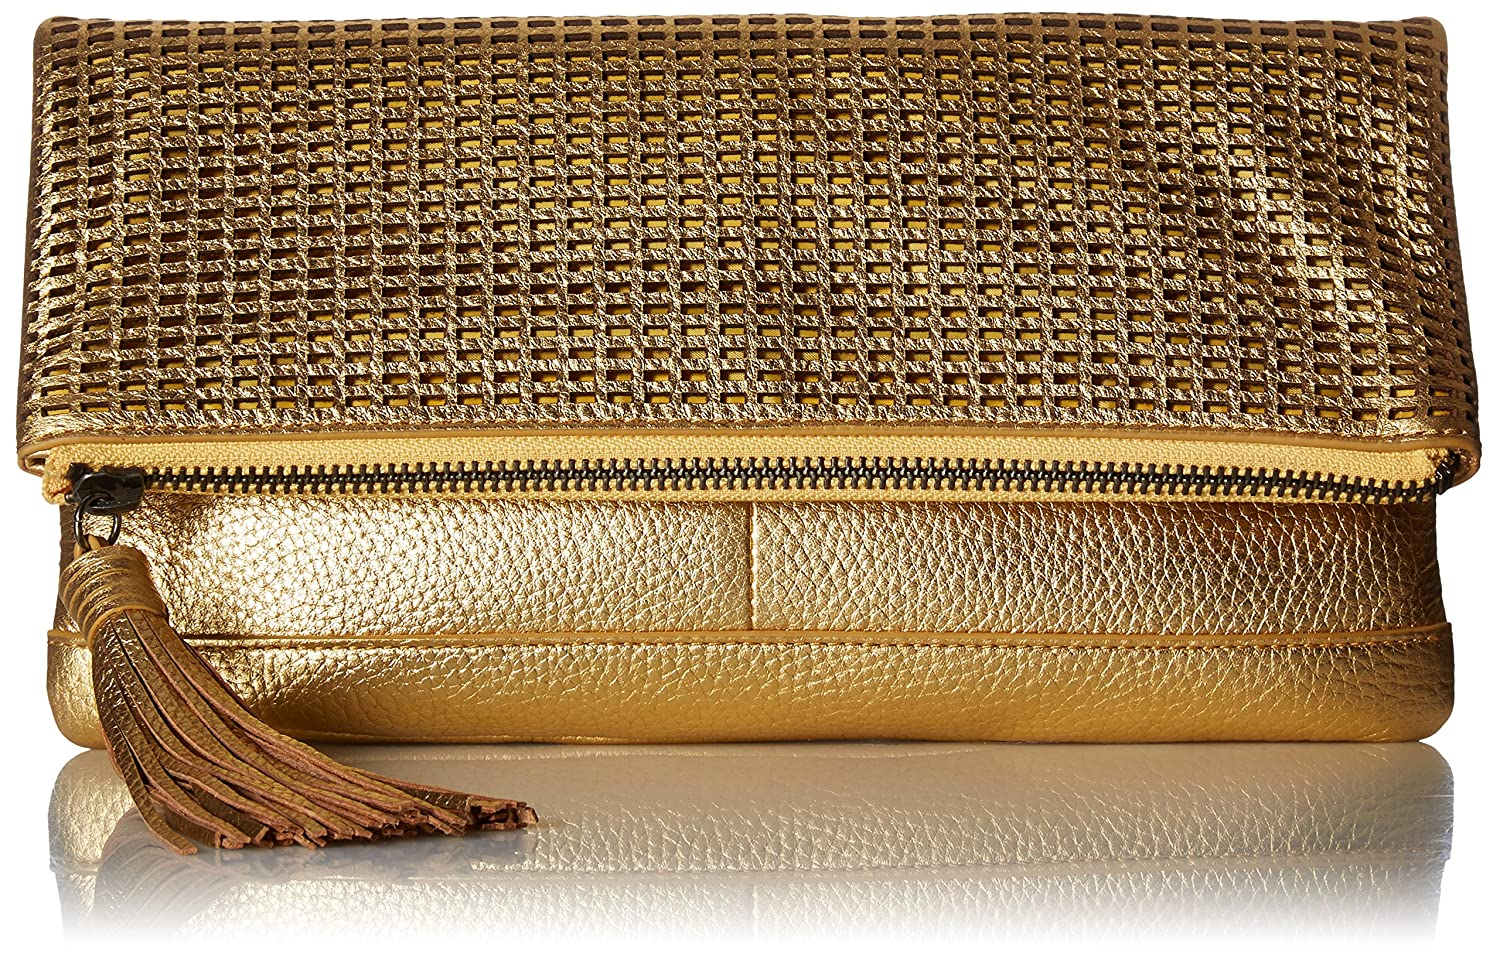 Badgley Mischka Blake Clutch Gold BLBG10117